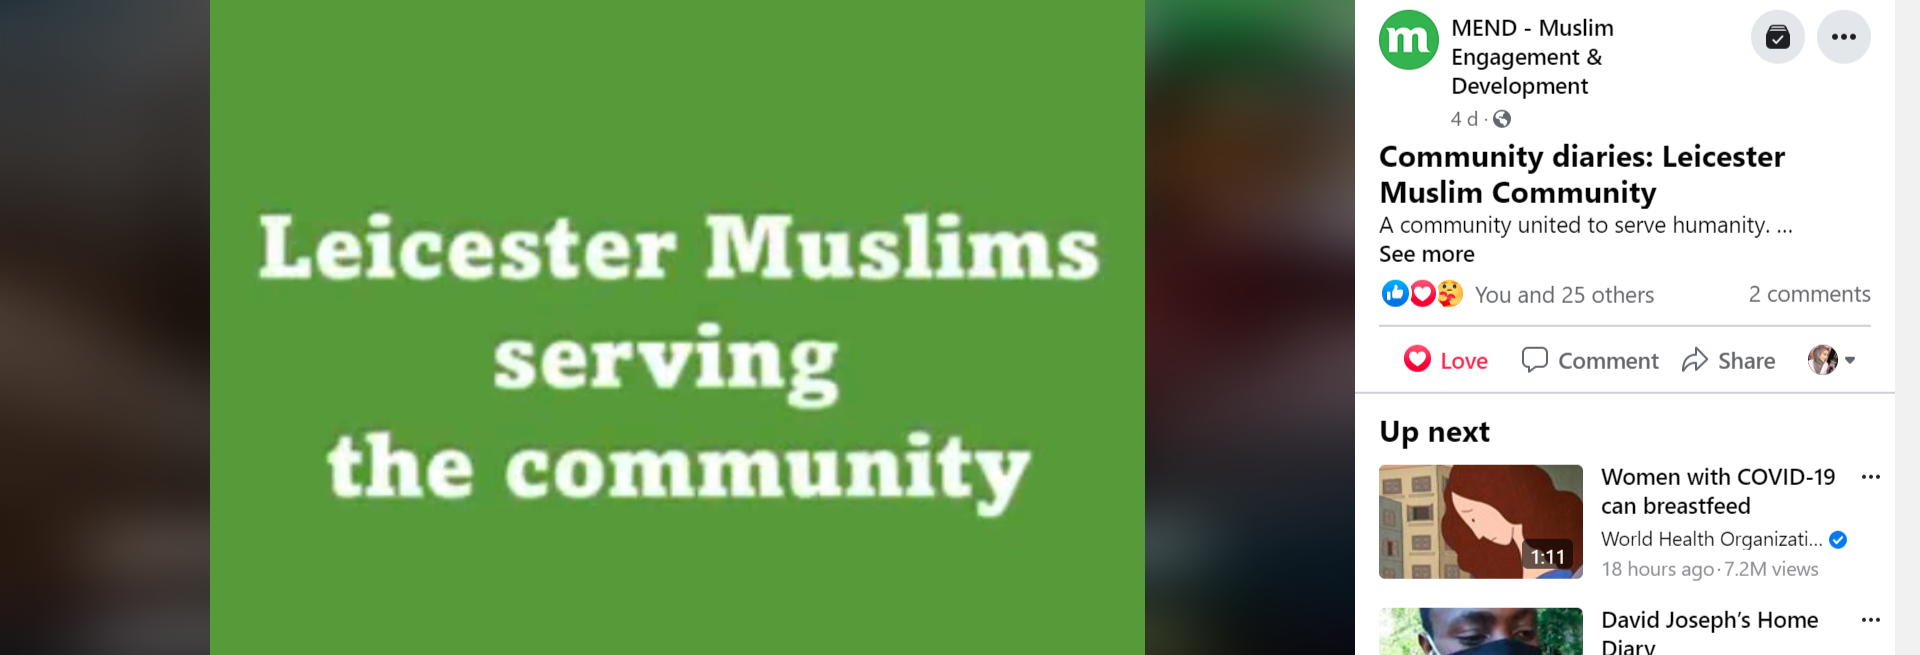 Leicester Muslims: A Community united to serve Humanity.